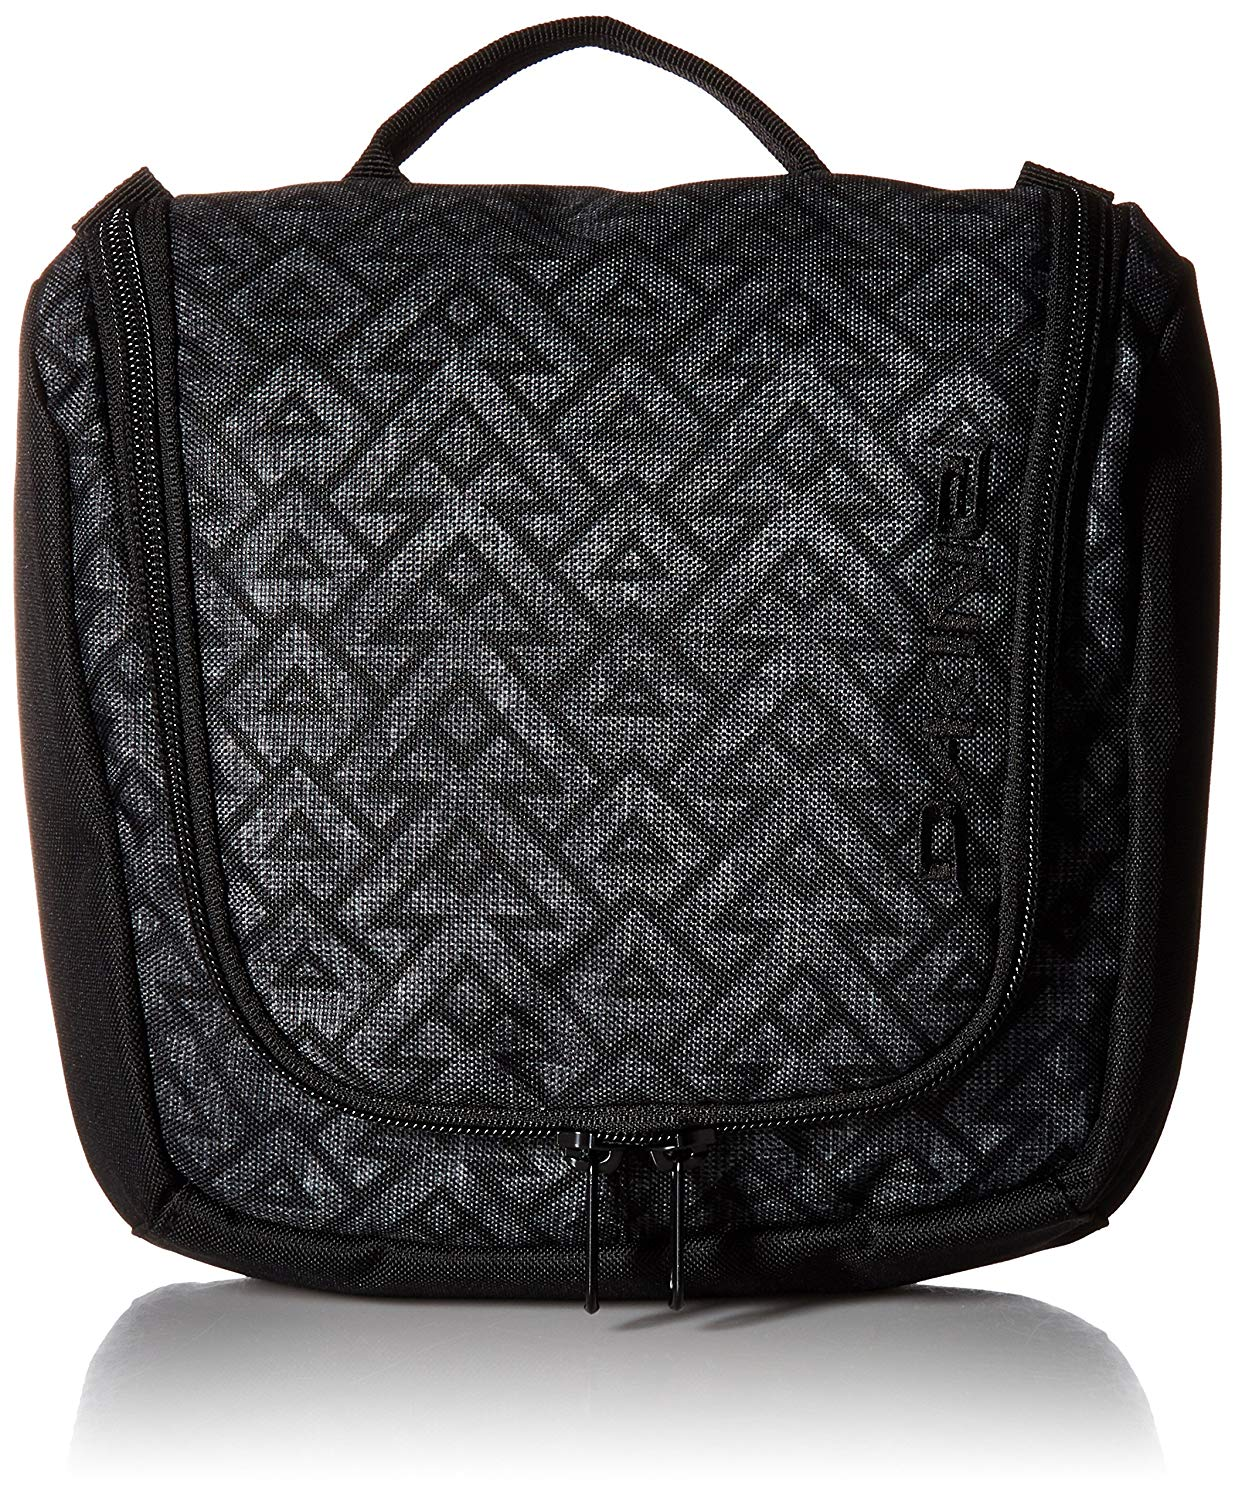 5. Toiletry Bag - This is another thing that I use for organization. Having a toiletry bag helps keep all of my bathroom products together and organized. I use this EVERY time I travel and just hang it up in each destination so that I don't actually have to unpack anything from the toiletry bag.